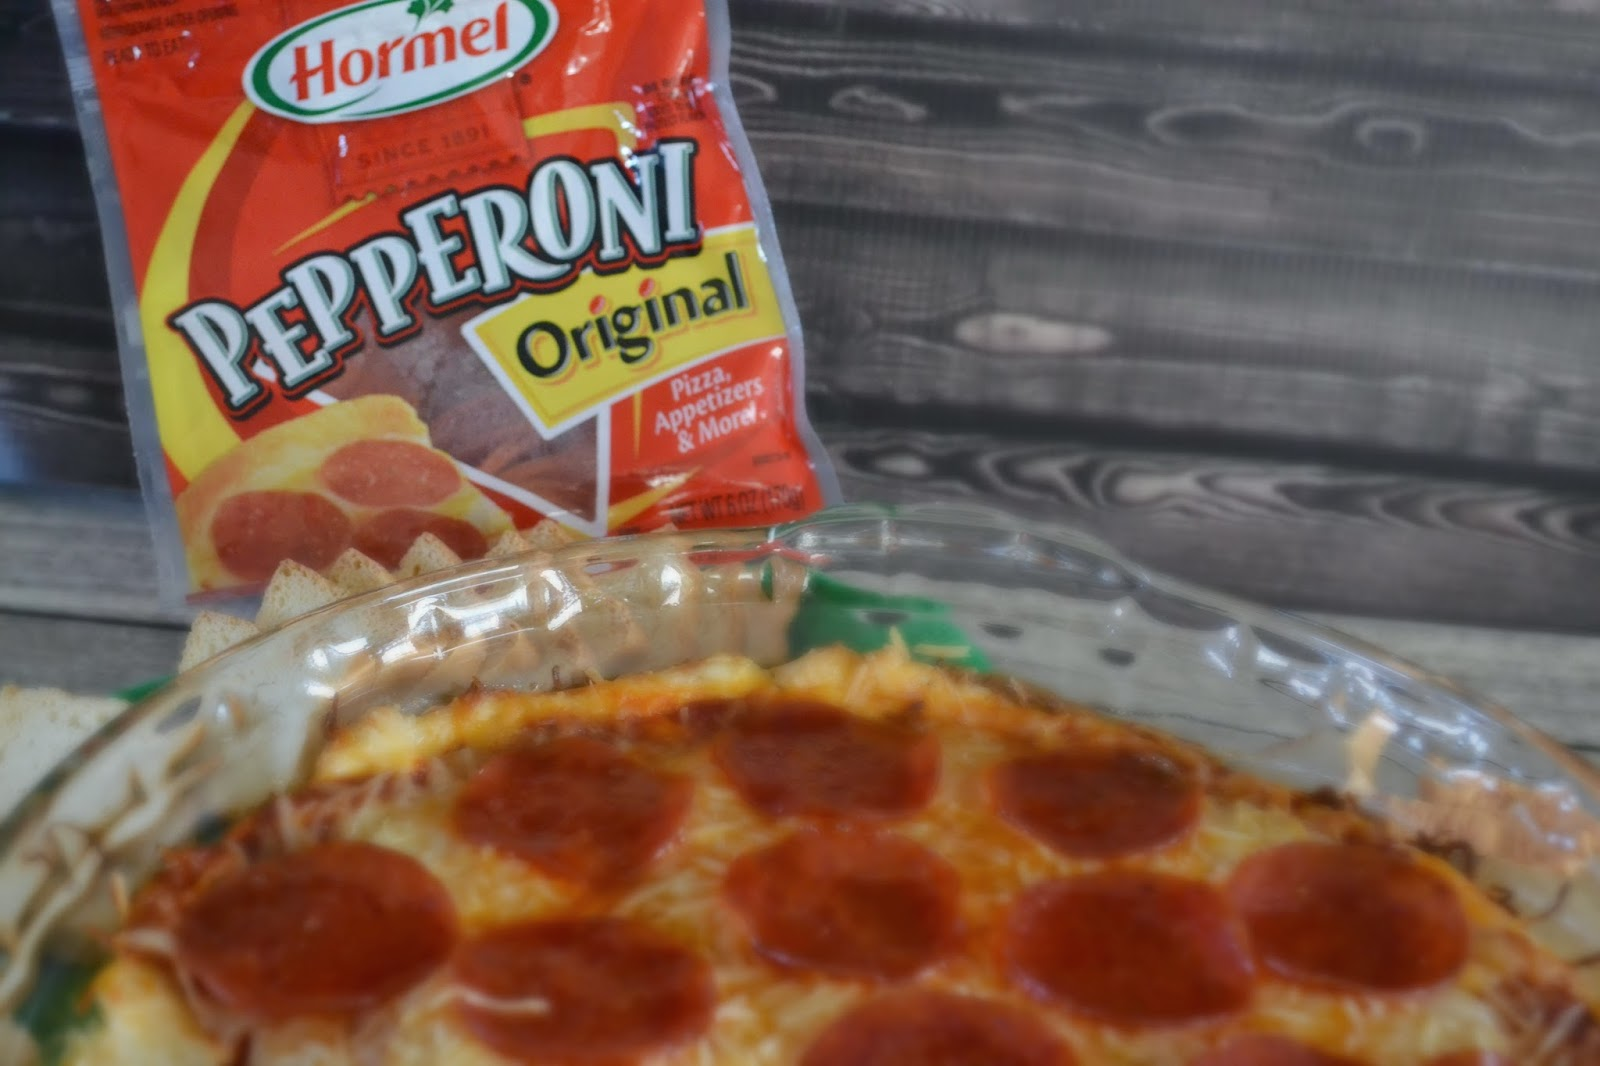 Hormel Pepperoni, Pepperoni Recipe Ideas, Hot Pizza Dip Recipe.  Pepperoni Pizza Dip, Pepperoni Pizza dip recipe, dip recipes to share.